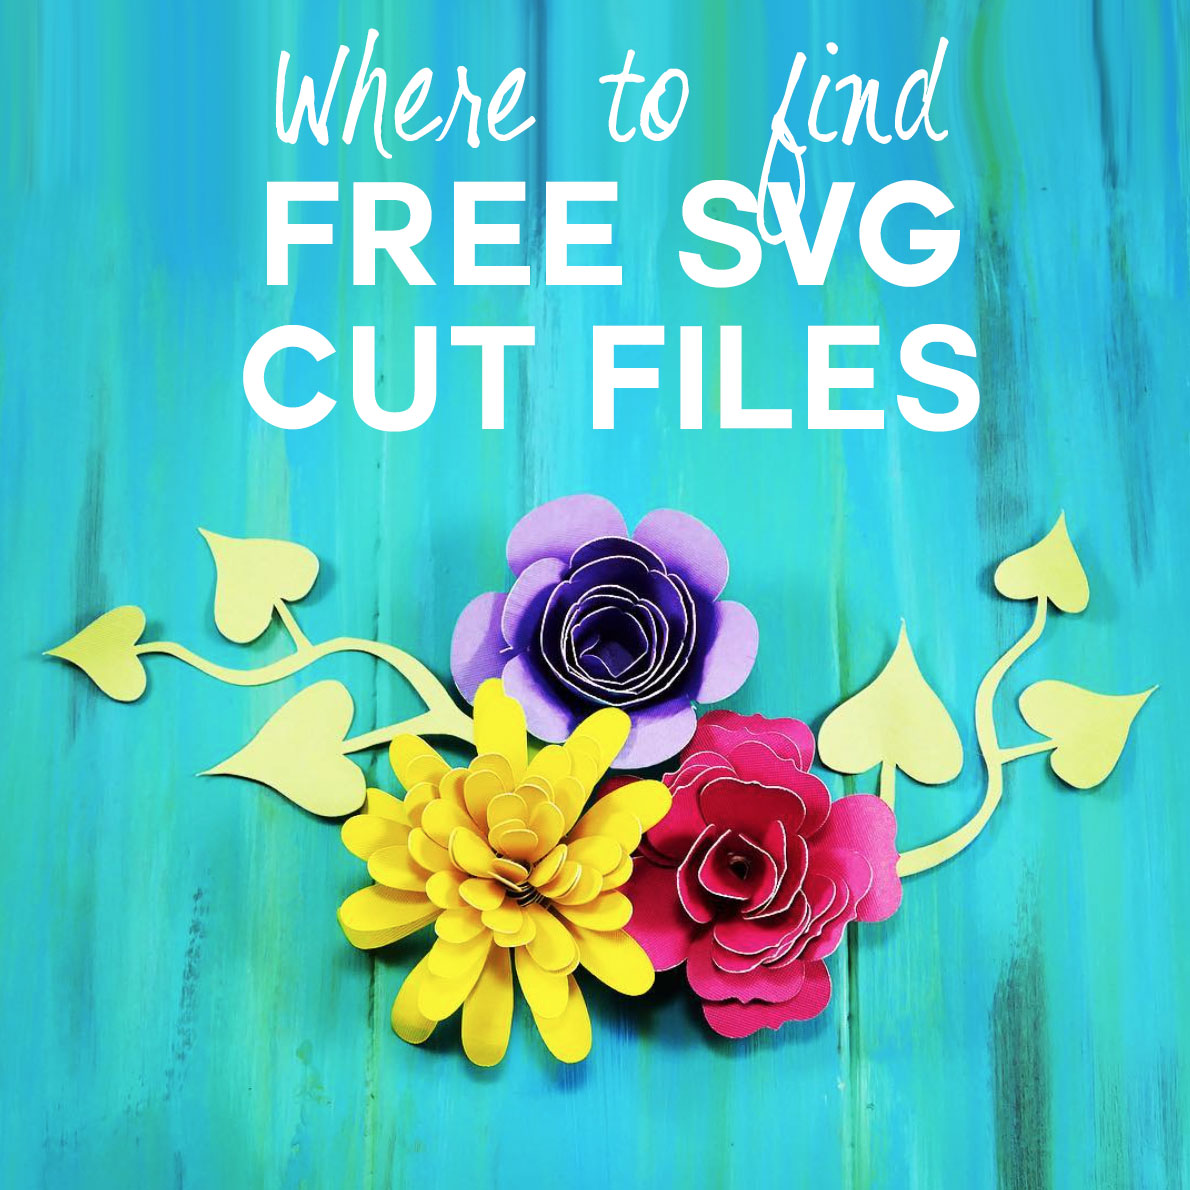 free svg cut files list where to find the best